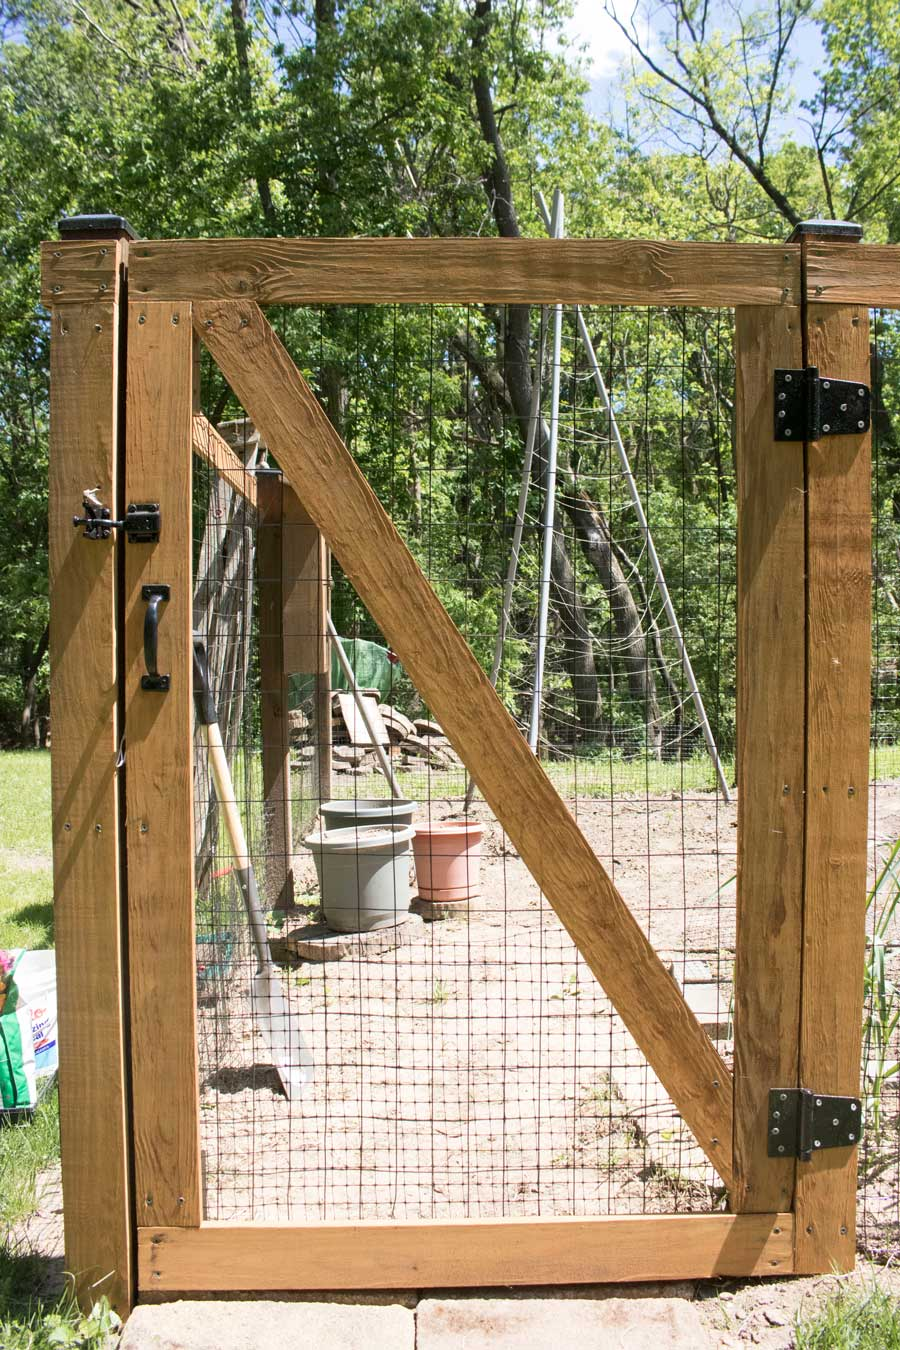 DIY garden fence constructed with self-closing hinges and designed for kids to access.